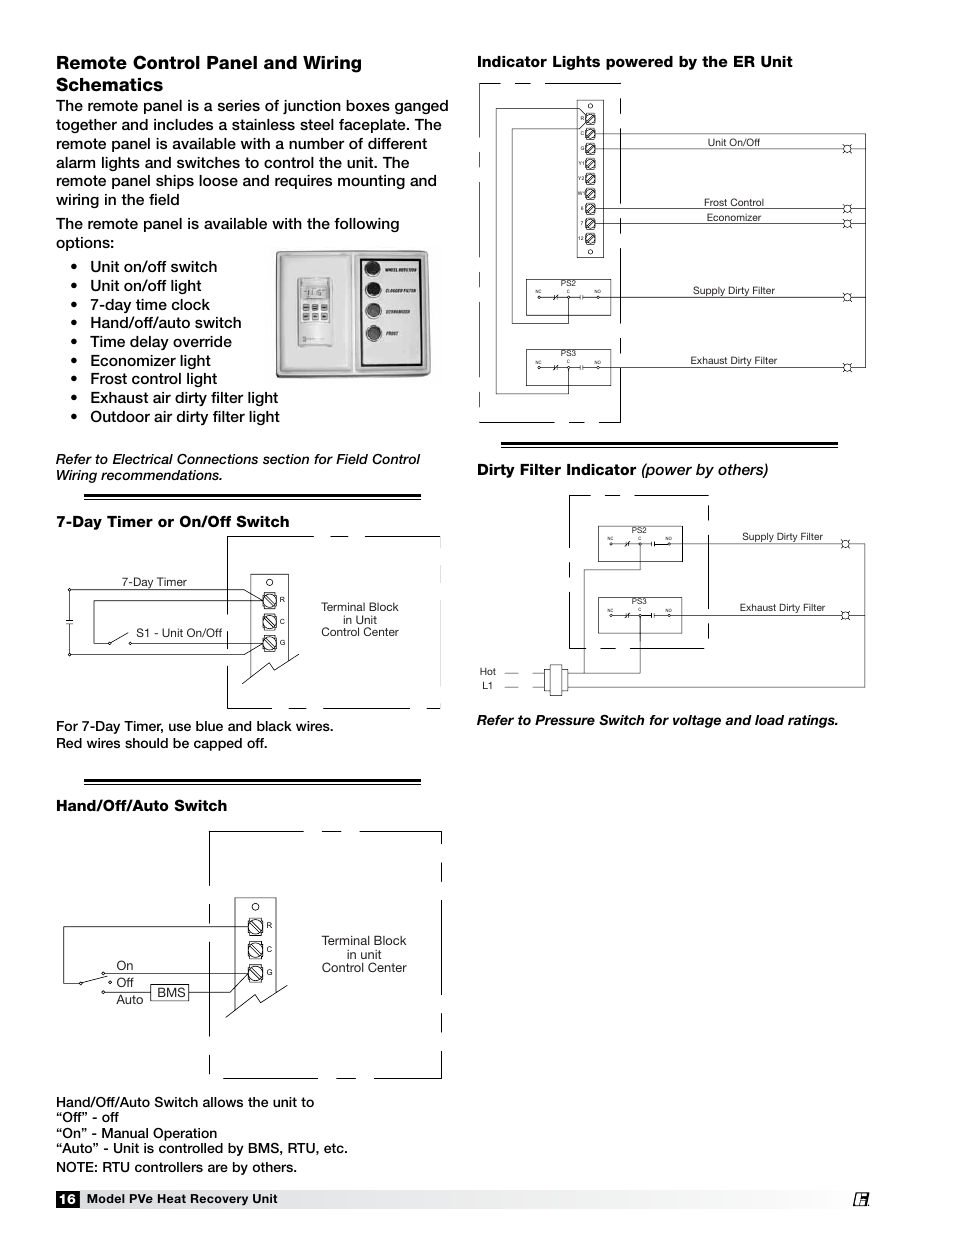 Hand Off Auto Switch Schematic Hoa Wiring Remote Control Panel And Schematics Day Timer Or On 954x1235